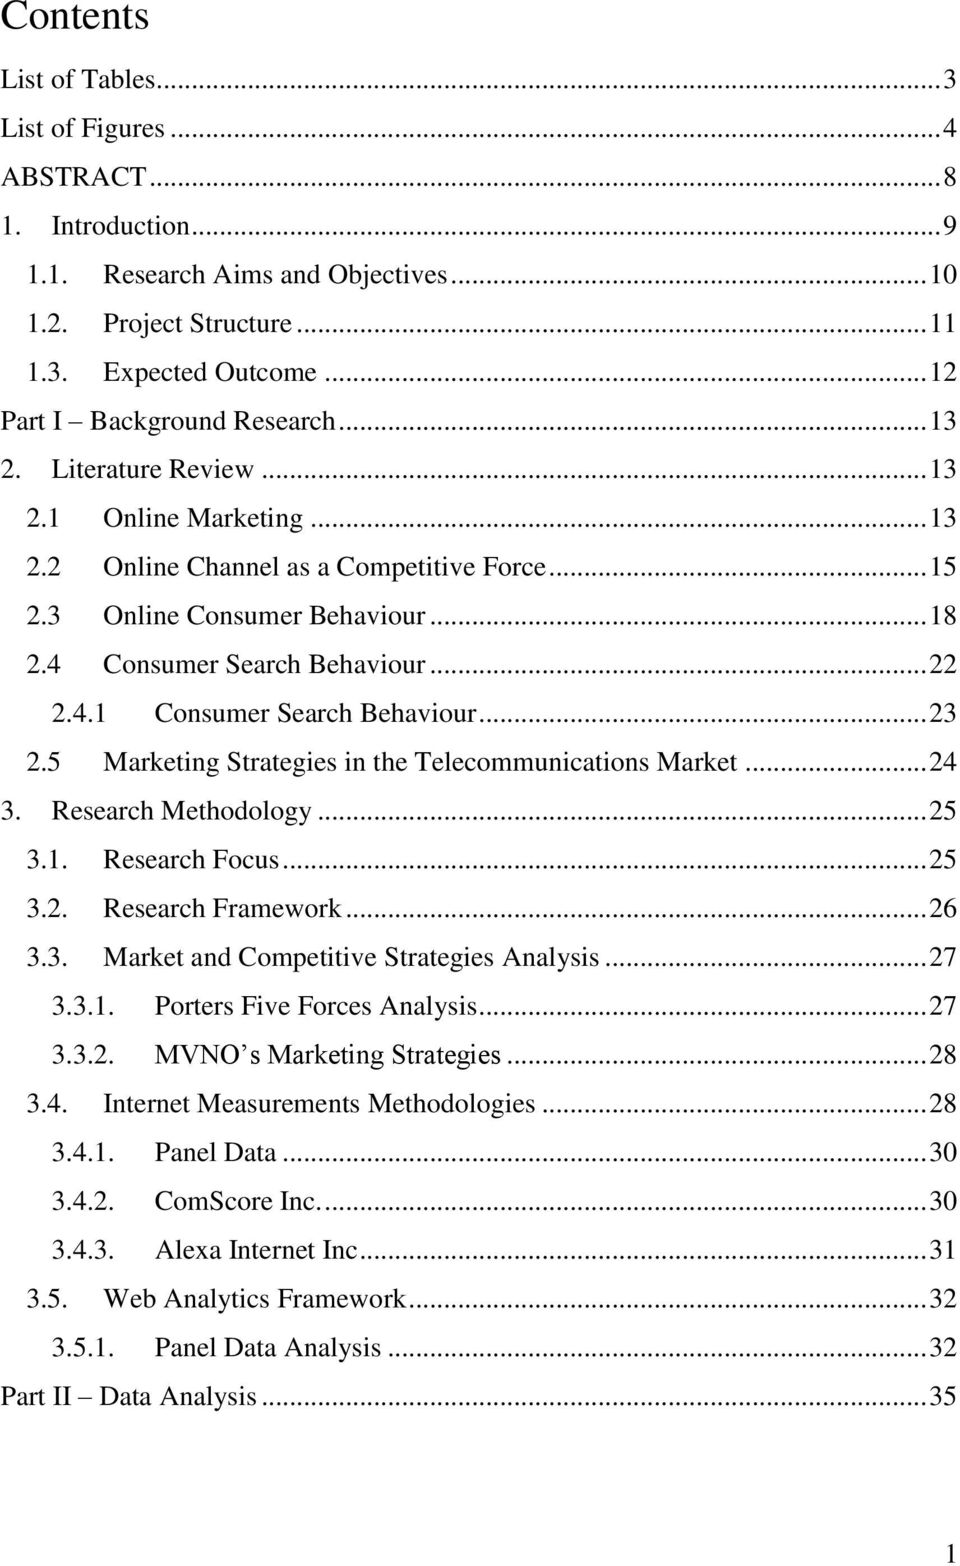 4 Consumer Search Behaviour... 22 2.4.1 Consumer Search Behaviour... 23 2.5 Marketing Strategies in the Telecommunications Market... 24 3. Research Methodology... 25 3.1. Research Focus... 25 3.2. Research Framework.